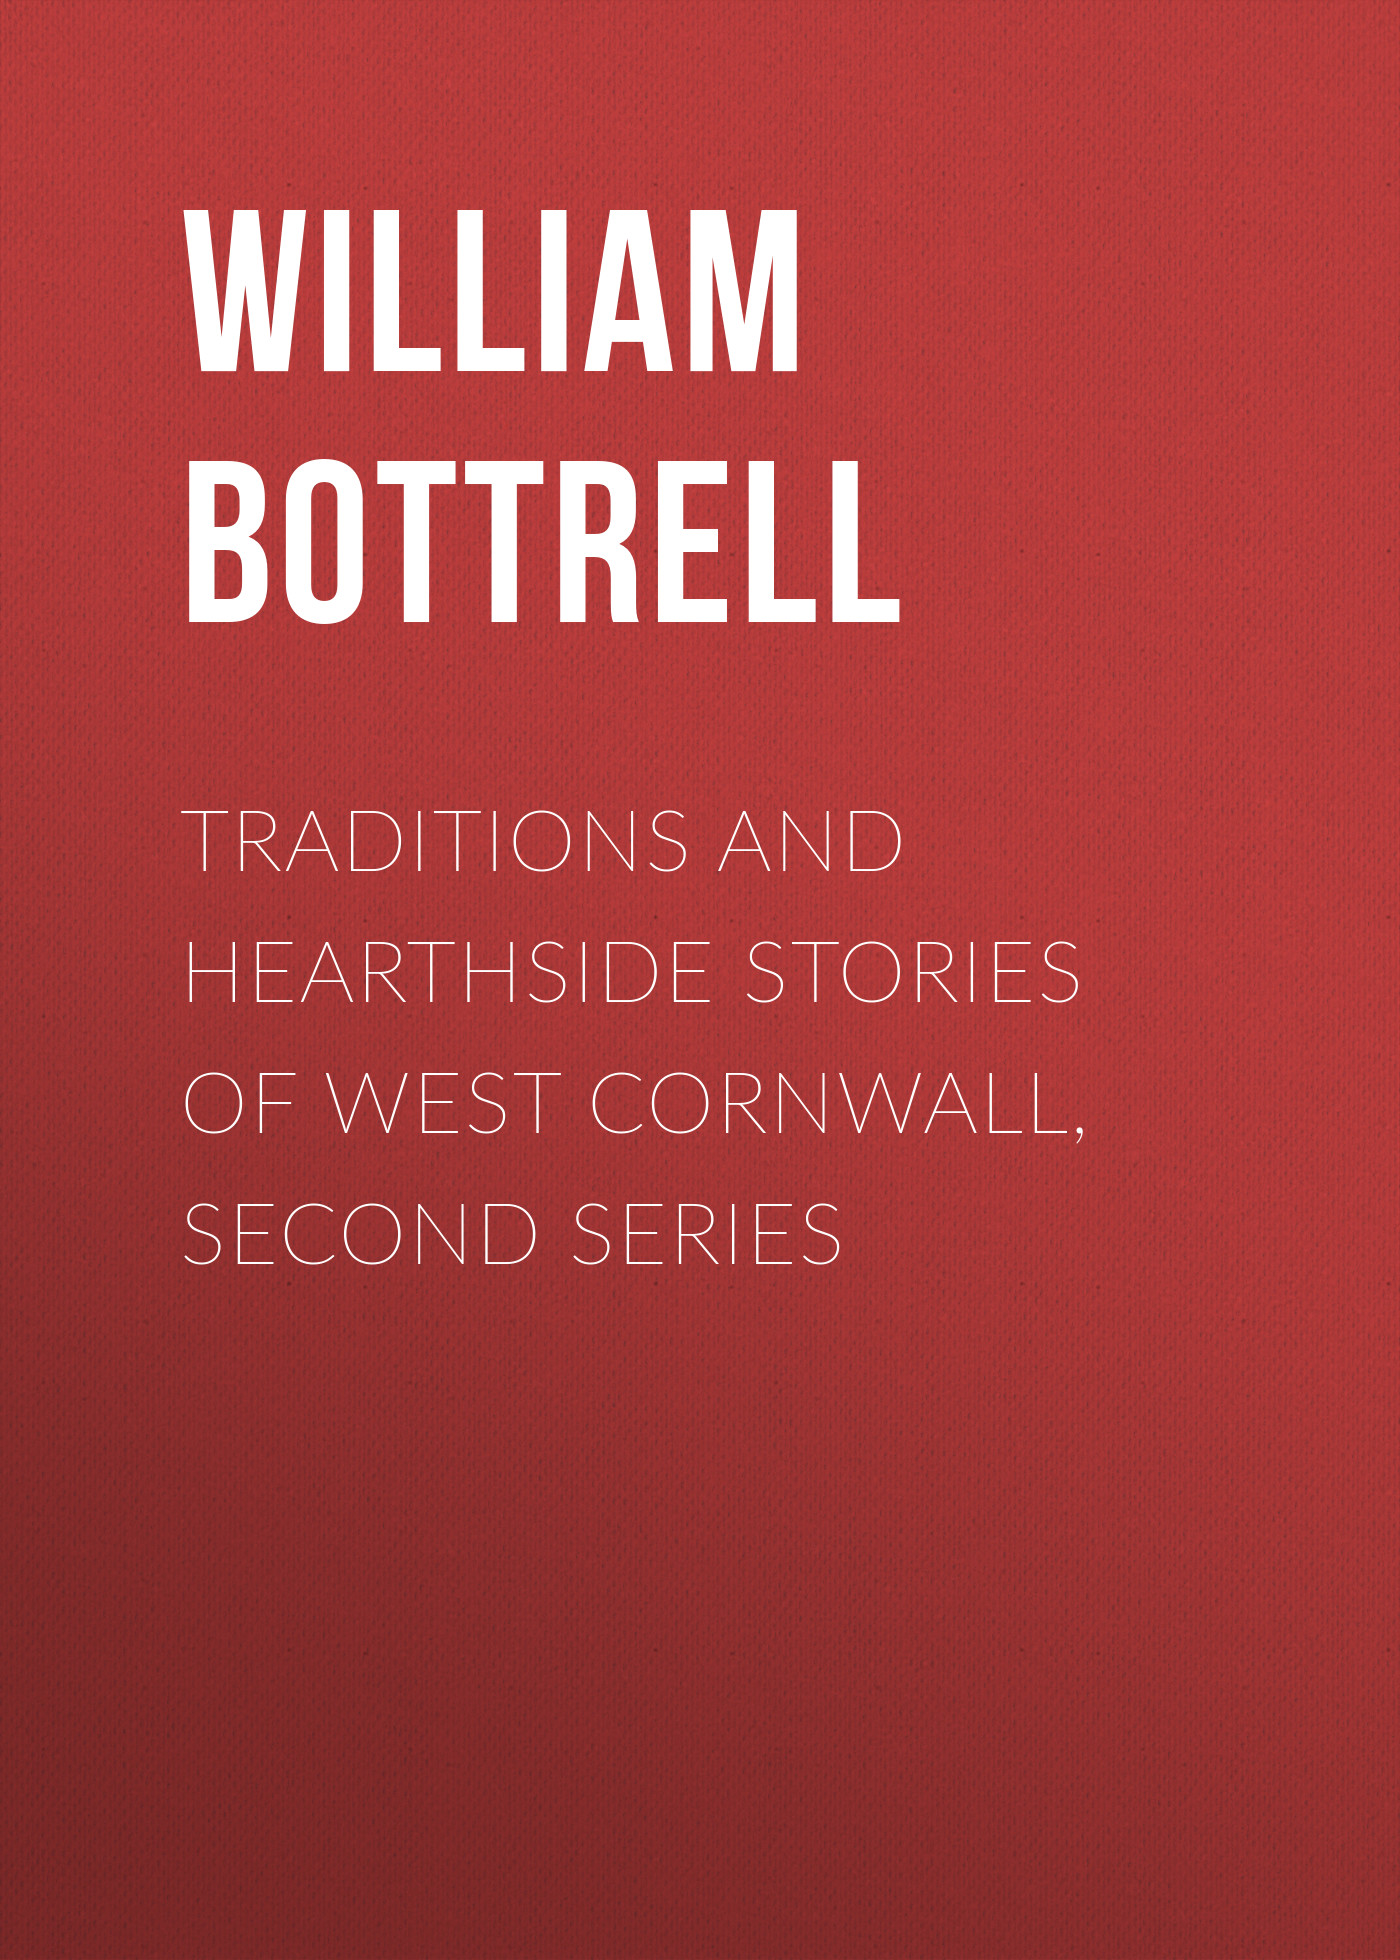 Bottrell William Traditions and Hearthside Stories of West Cornwall, Second Series vitaly mushkin erotic stories top ten